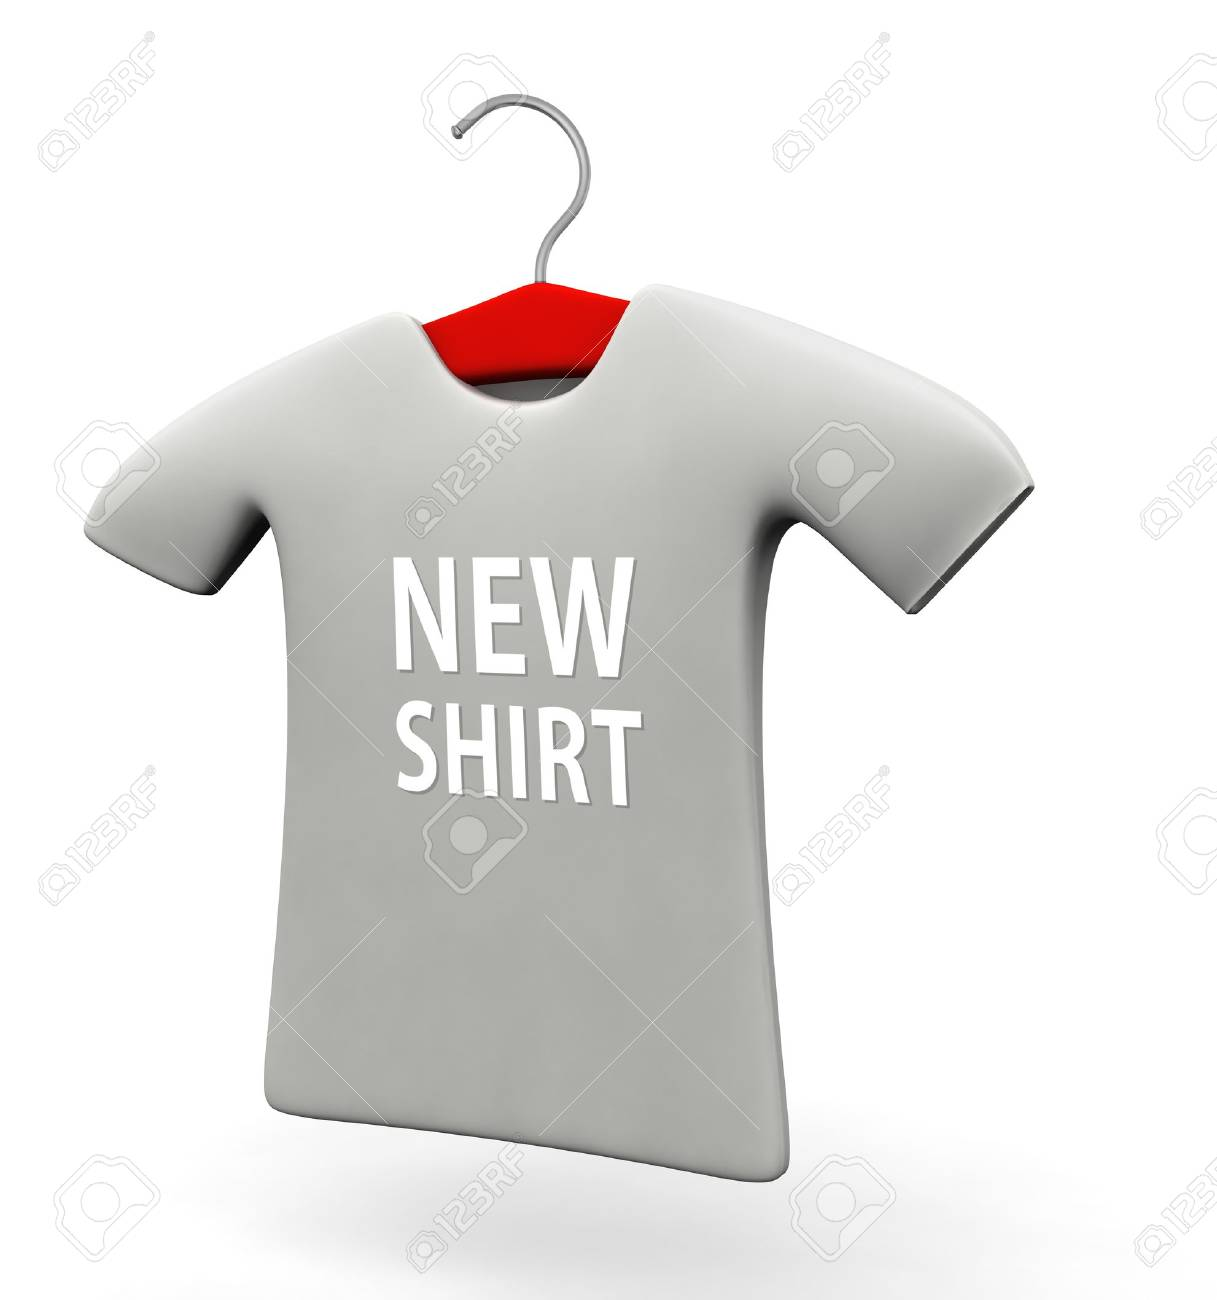 New arrival t-shirt concept 3d illustration isolated white background Stock Photo - 21915413